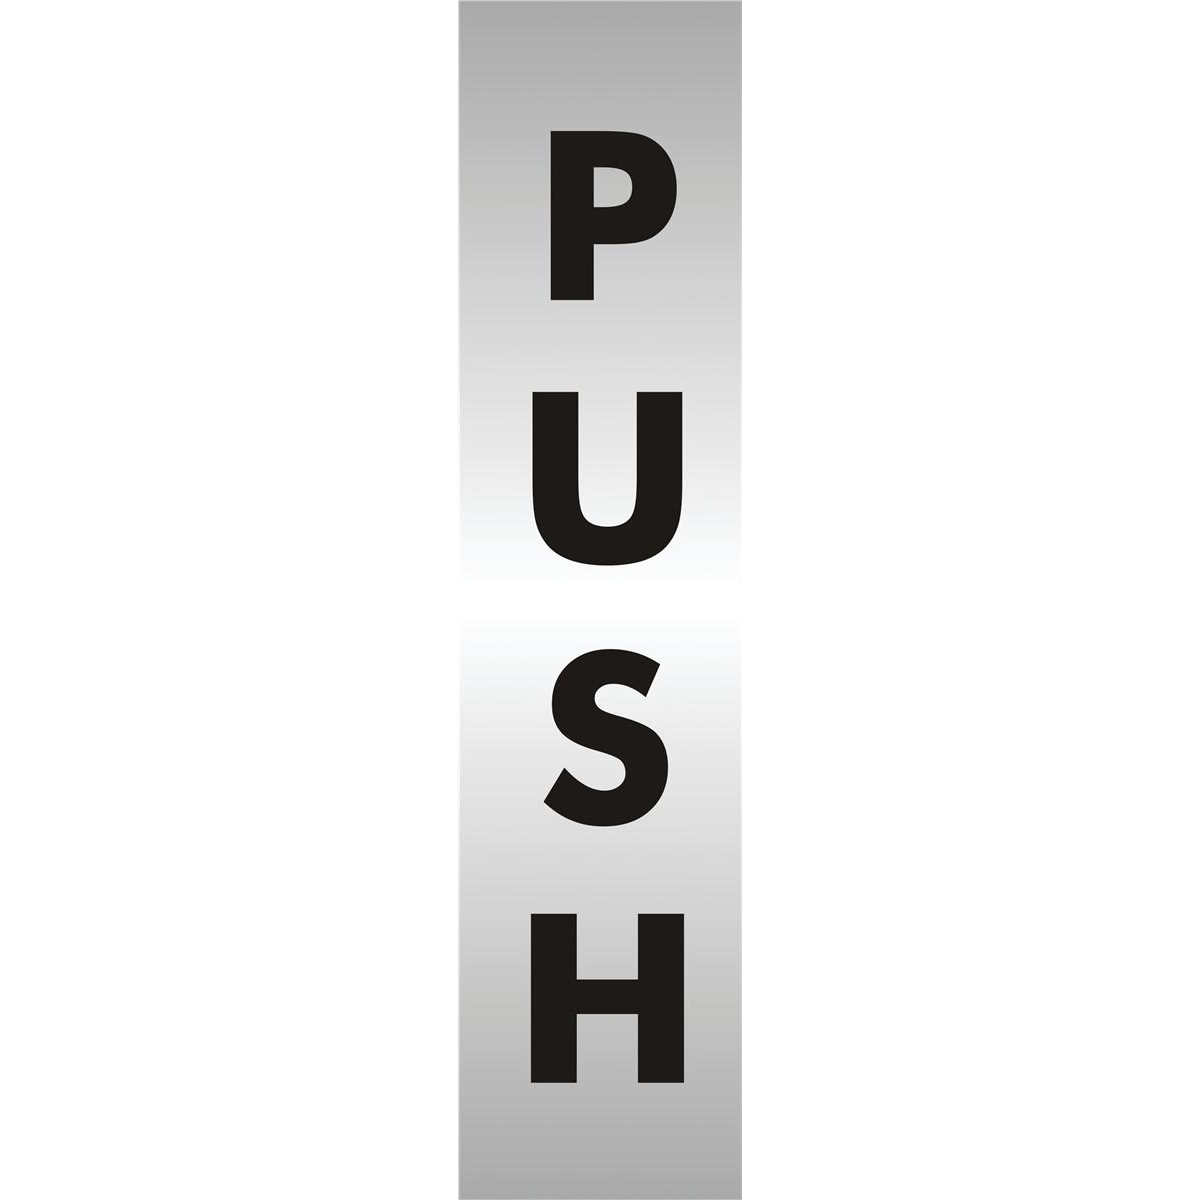 Stewart Superior Push Sign Brushed Aluminium Acrylic W45xH190mm Self-adhesive Ref bac126